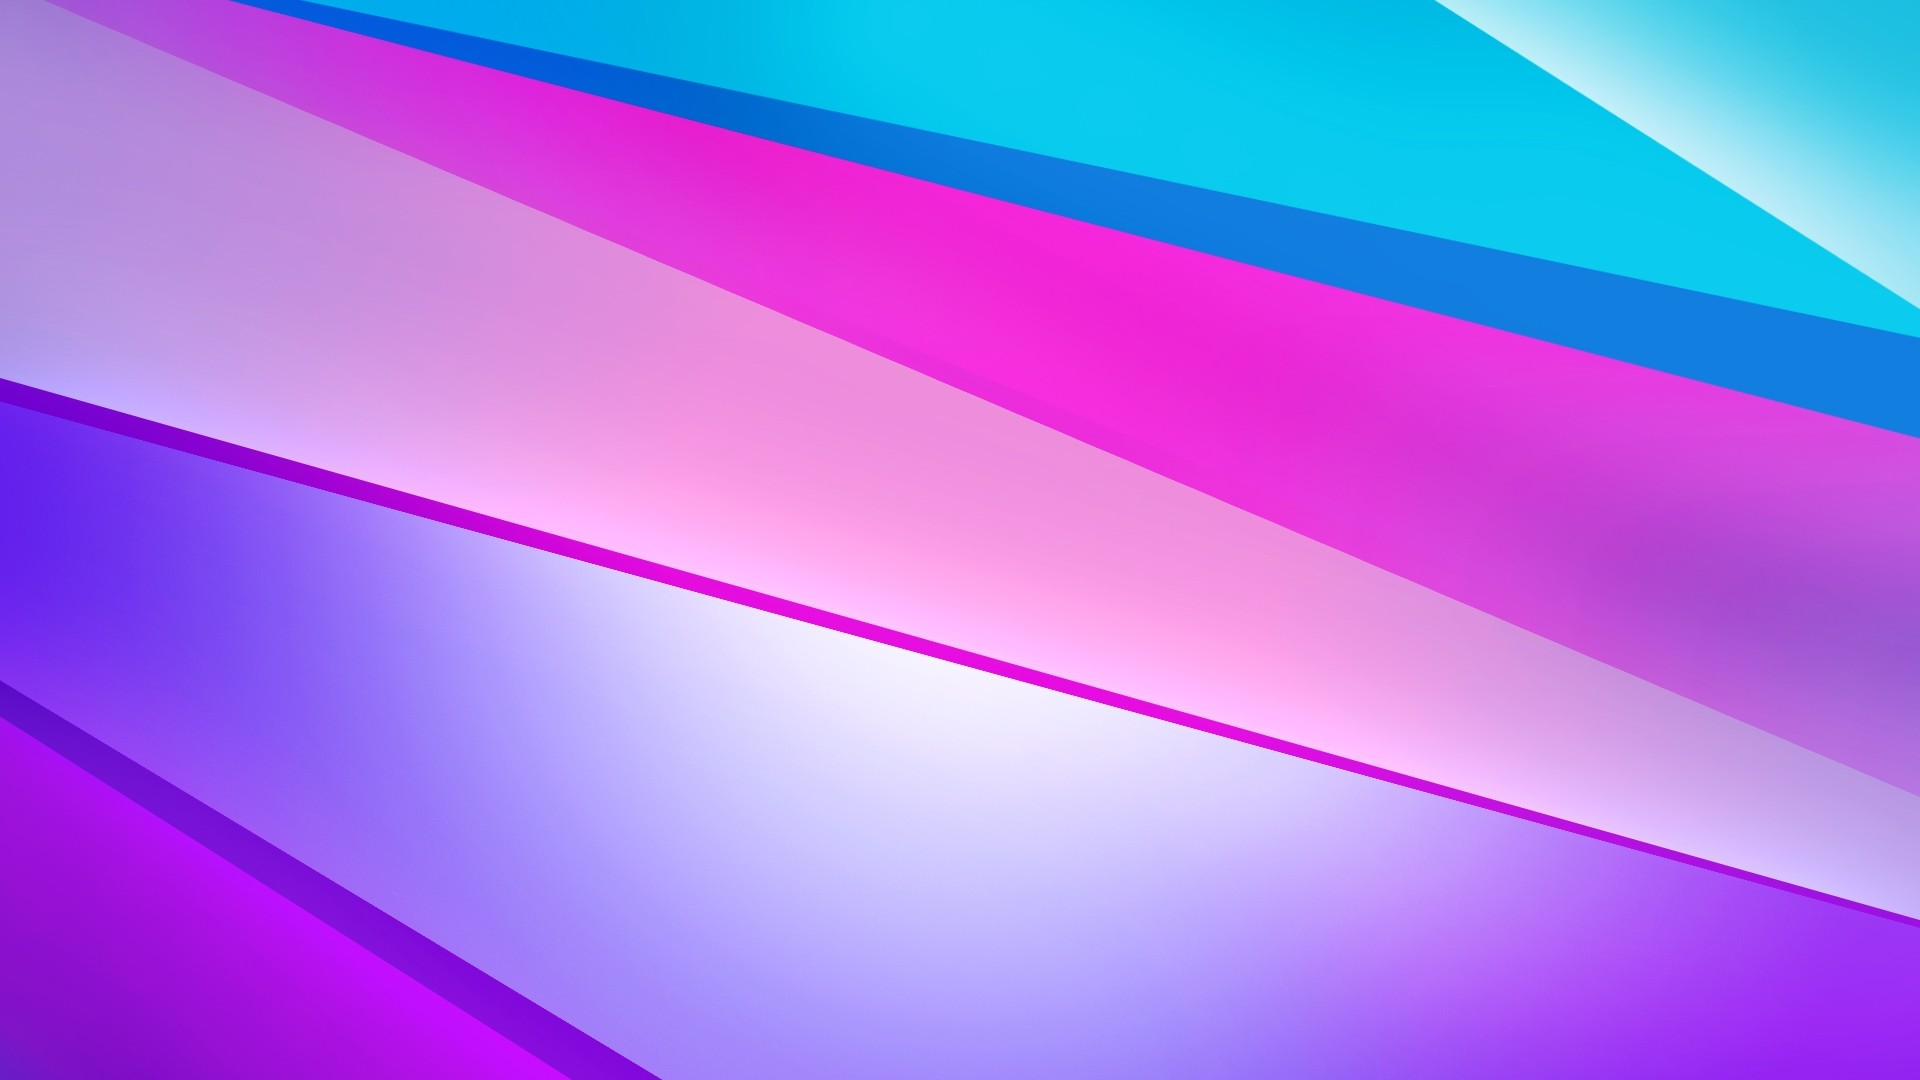 Pink And Blue Wallpaper Picture hd